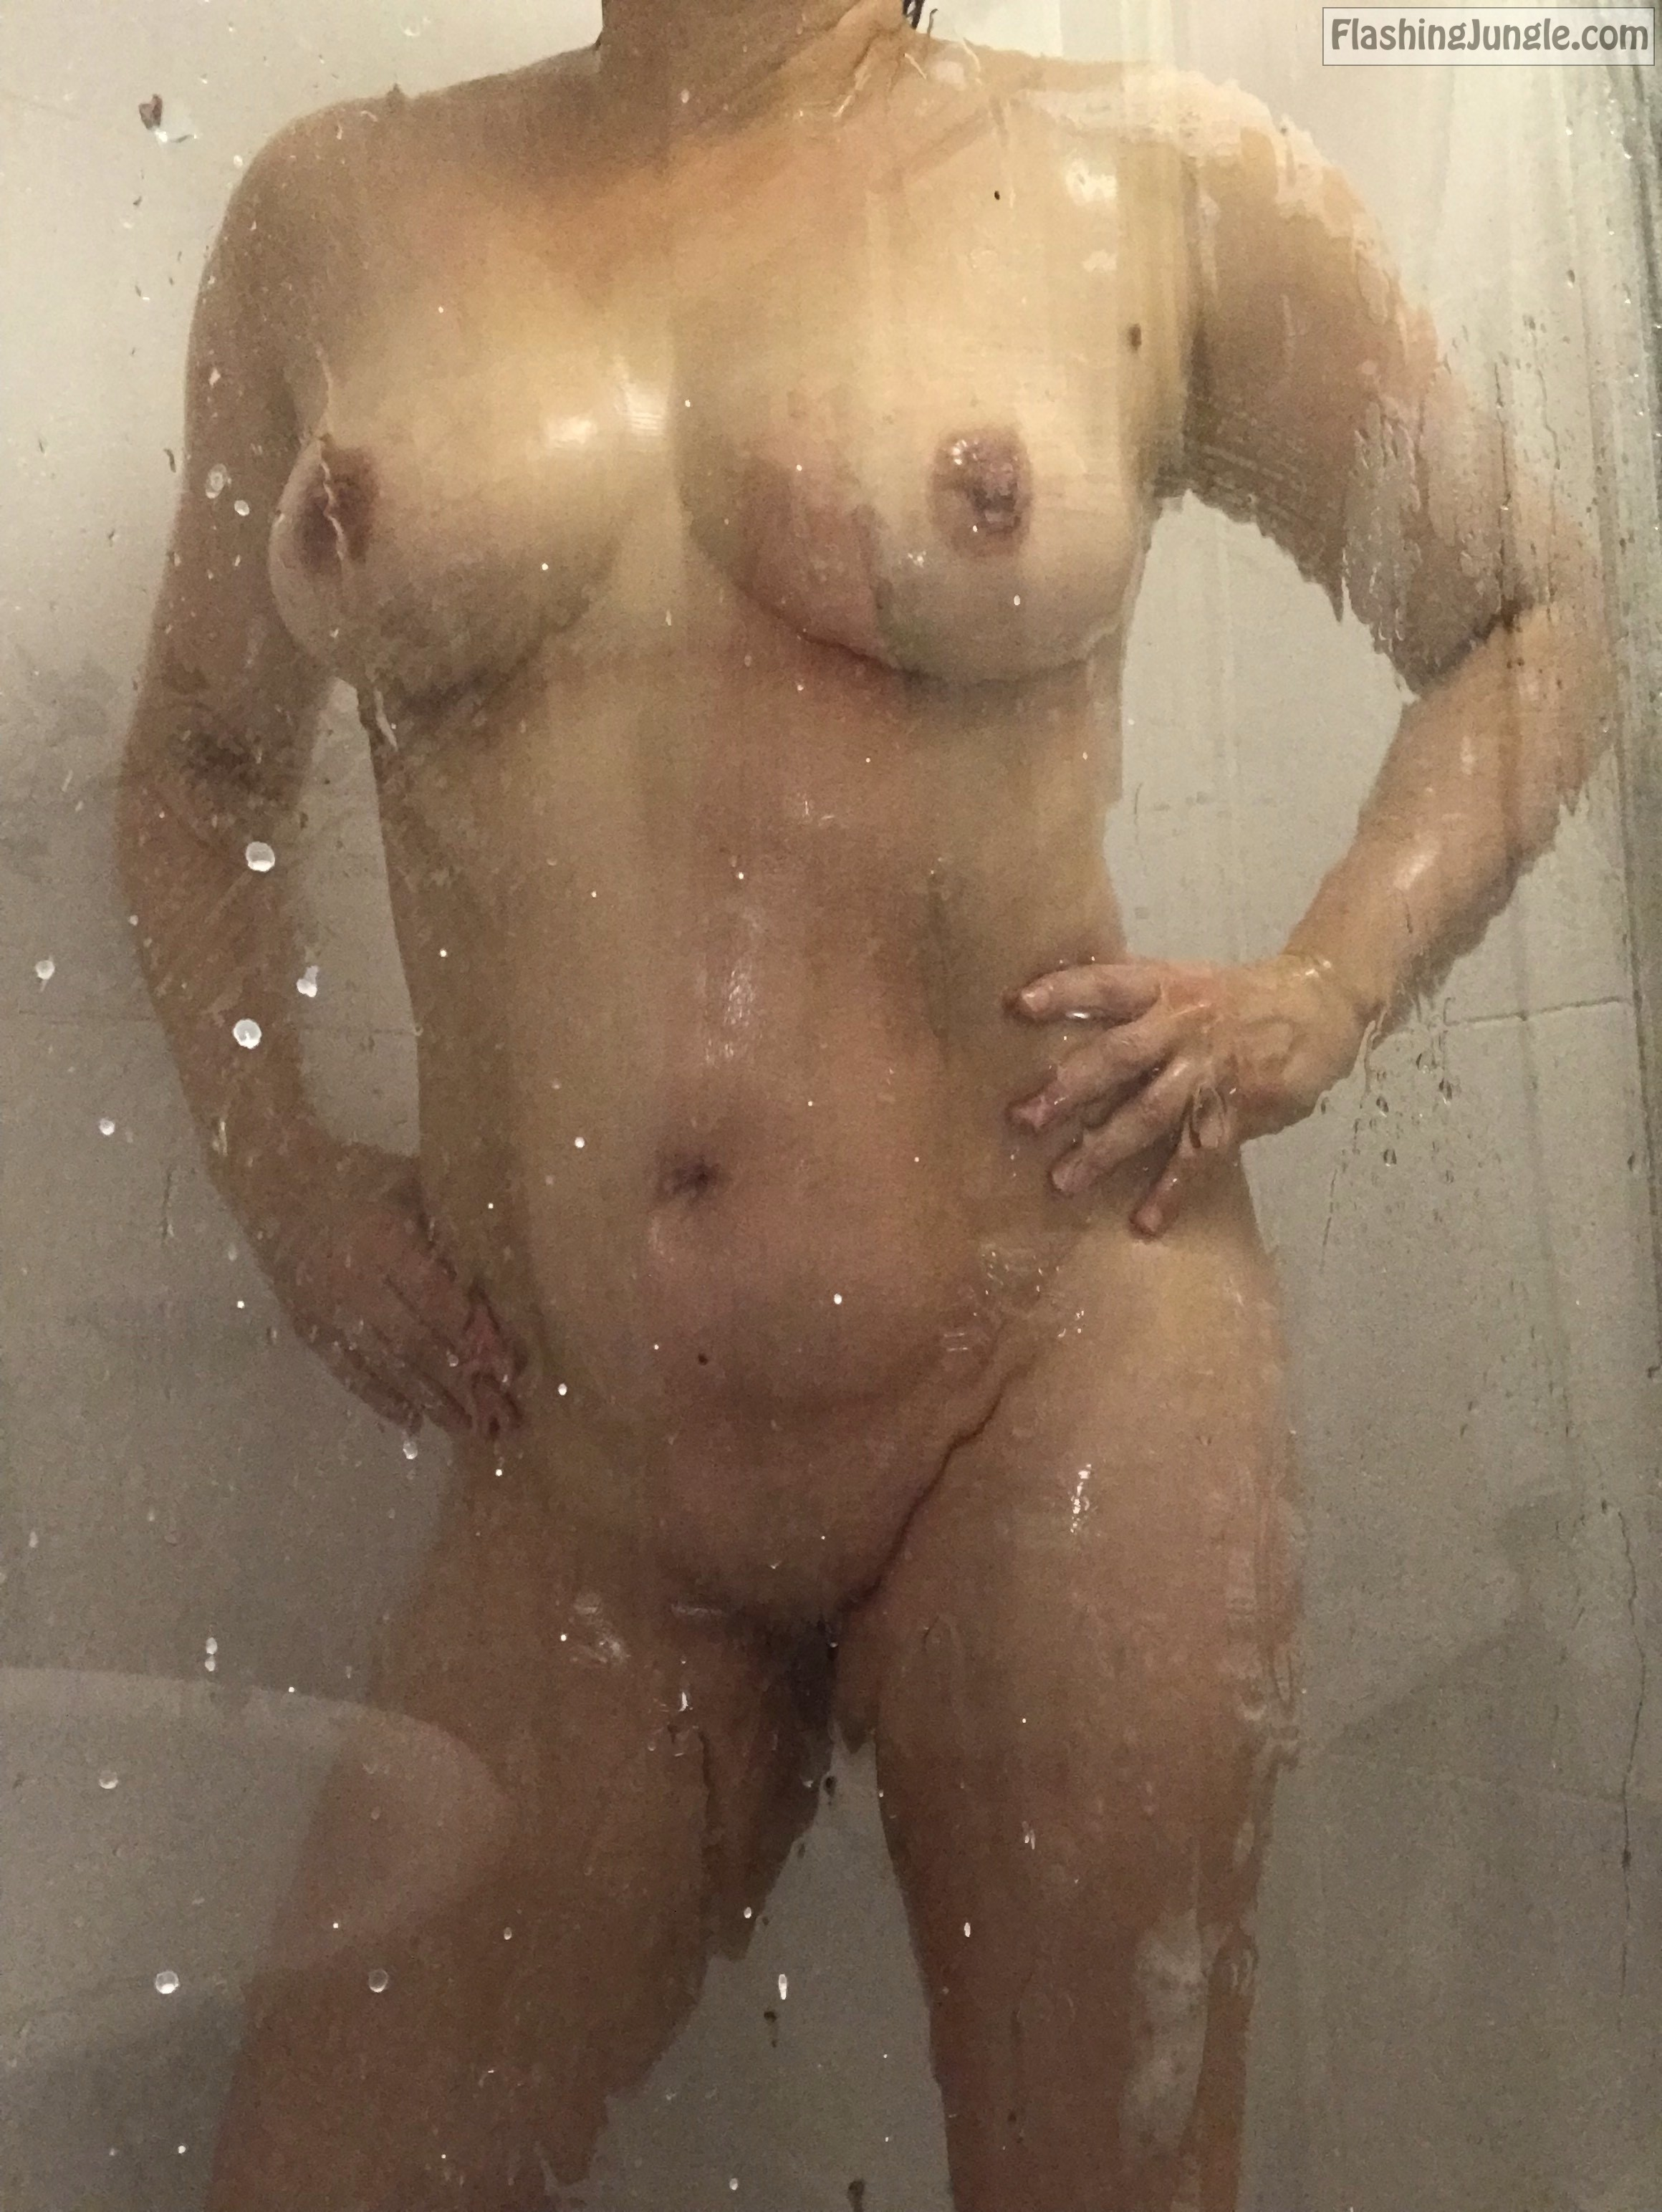 My wifes pussy and tits under shower real nudity pussy flash milf pics boobs flash